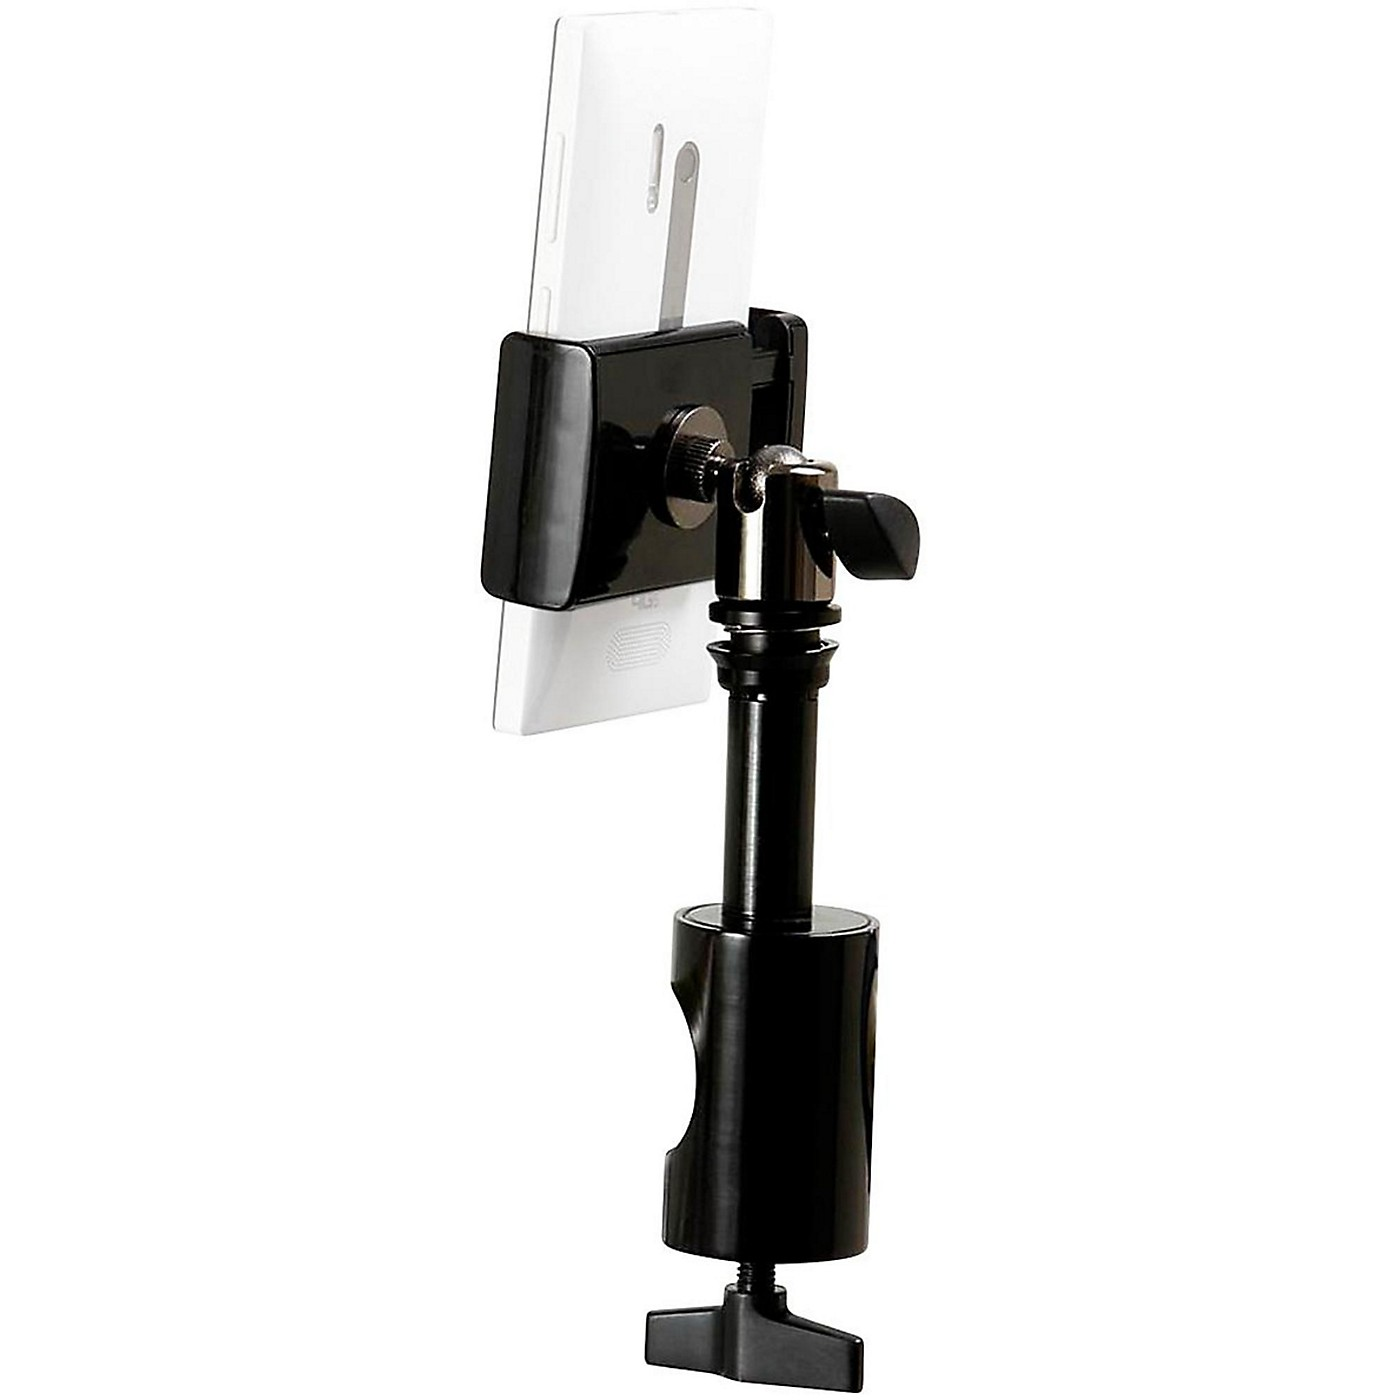 On-Stage U-Mount TCM1901 Grip-On Universal Device Holder with Round Clamp thumbnail